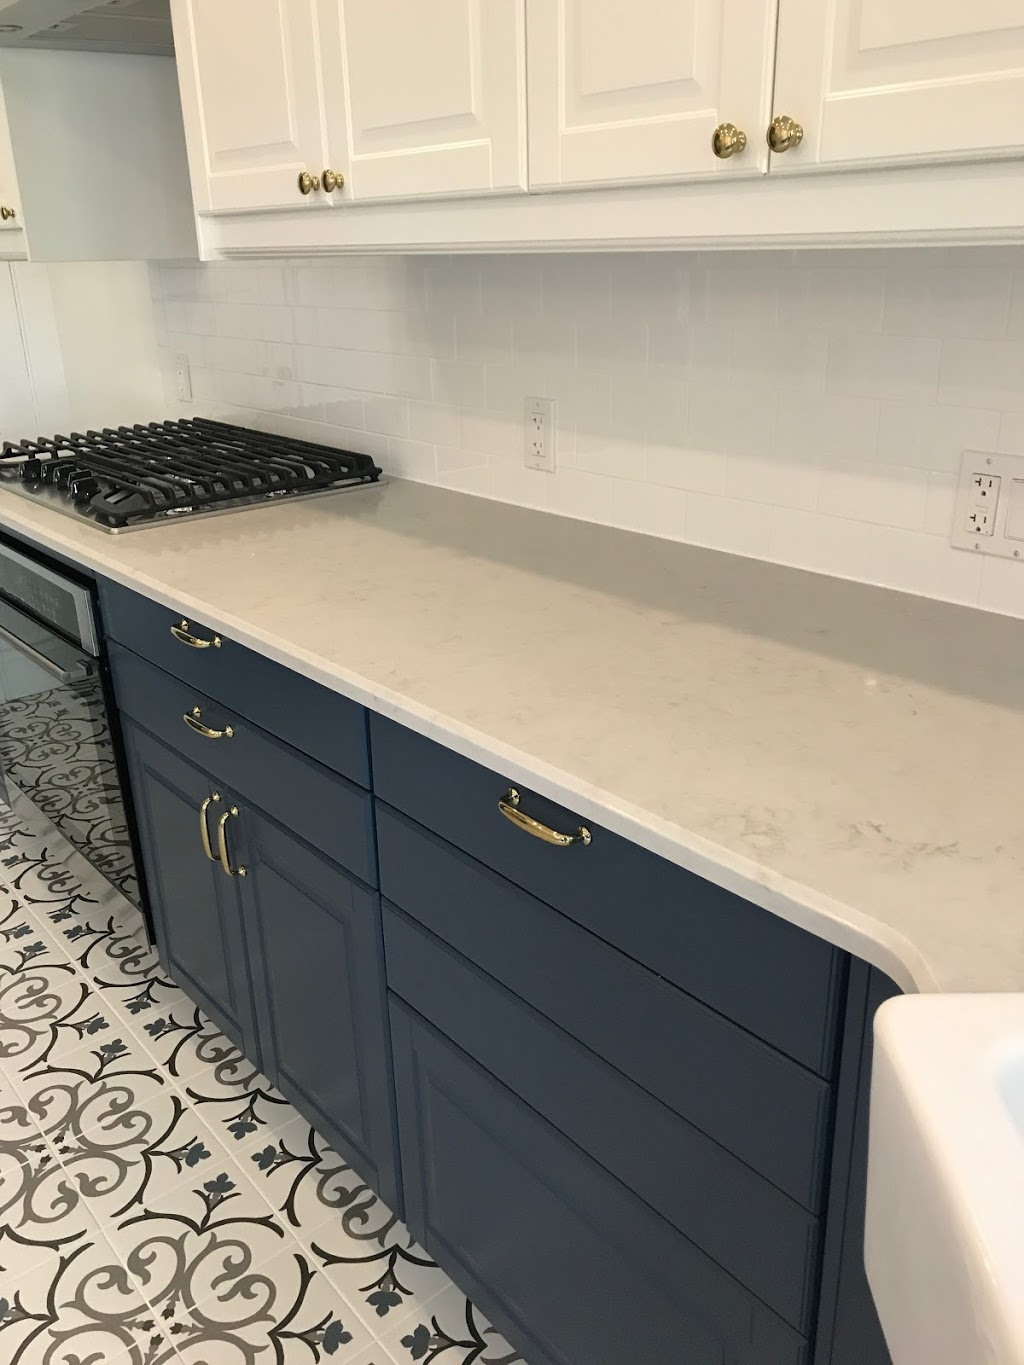 PAINT FINISHER - Professional kitchen Cabinet Refurnishing And P | home goods store | 303 Riel Dr, Mississauga, ON L5B 3K1, Canada | 6478387795 OR +1 647-838-7795